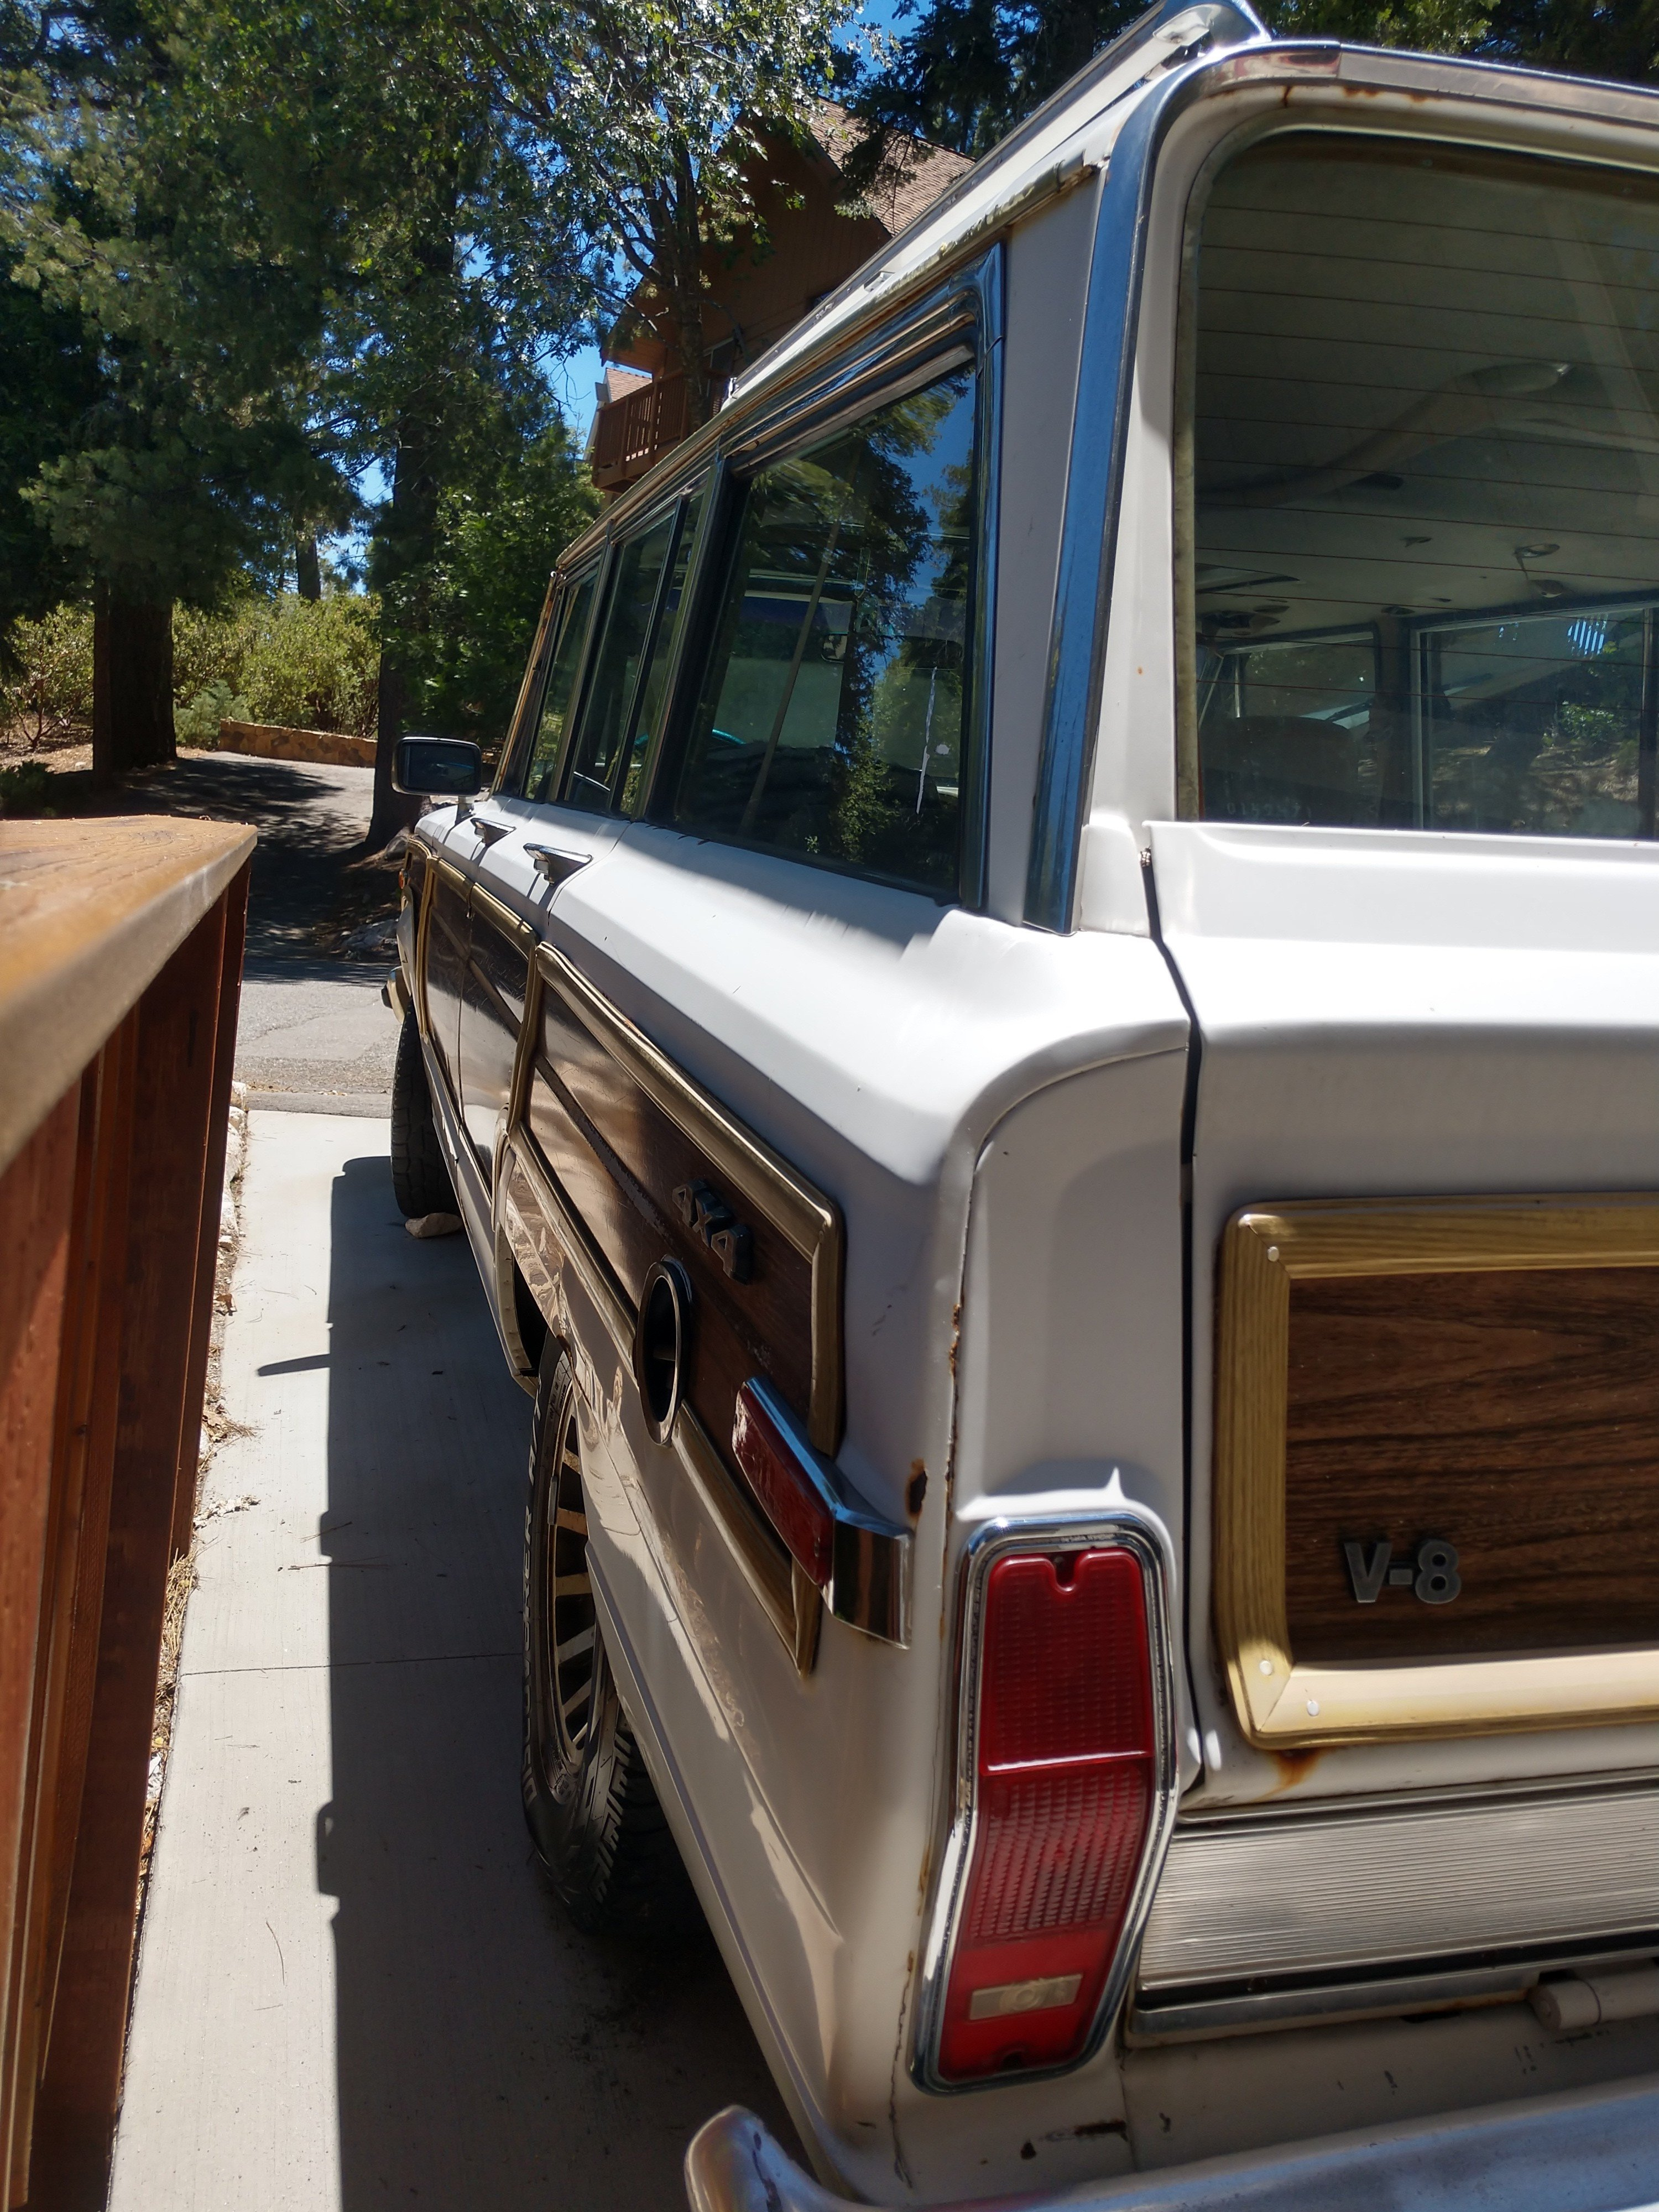 1988 jeep grand wagoneer for sale near blue jay california 92317 classics on autotrader autotrader classics